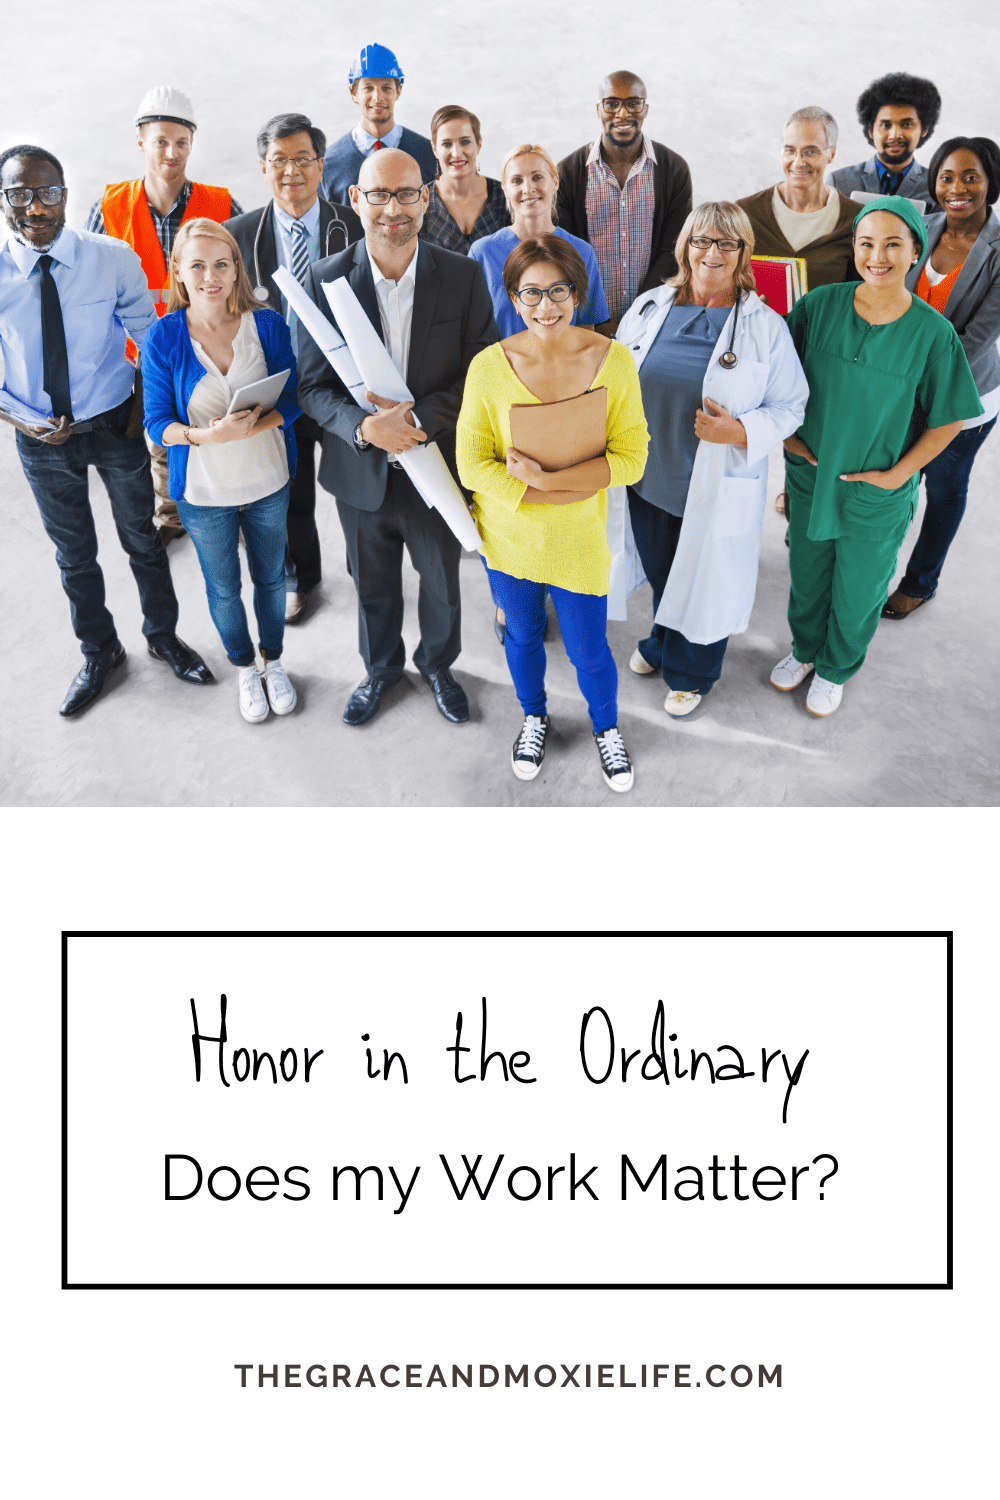 Honor in the Ordinary: Does my Work Matter? | The Grace and Moxie Life